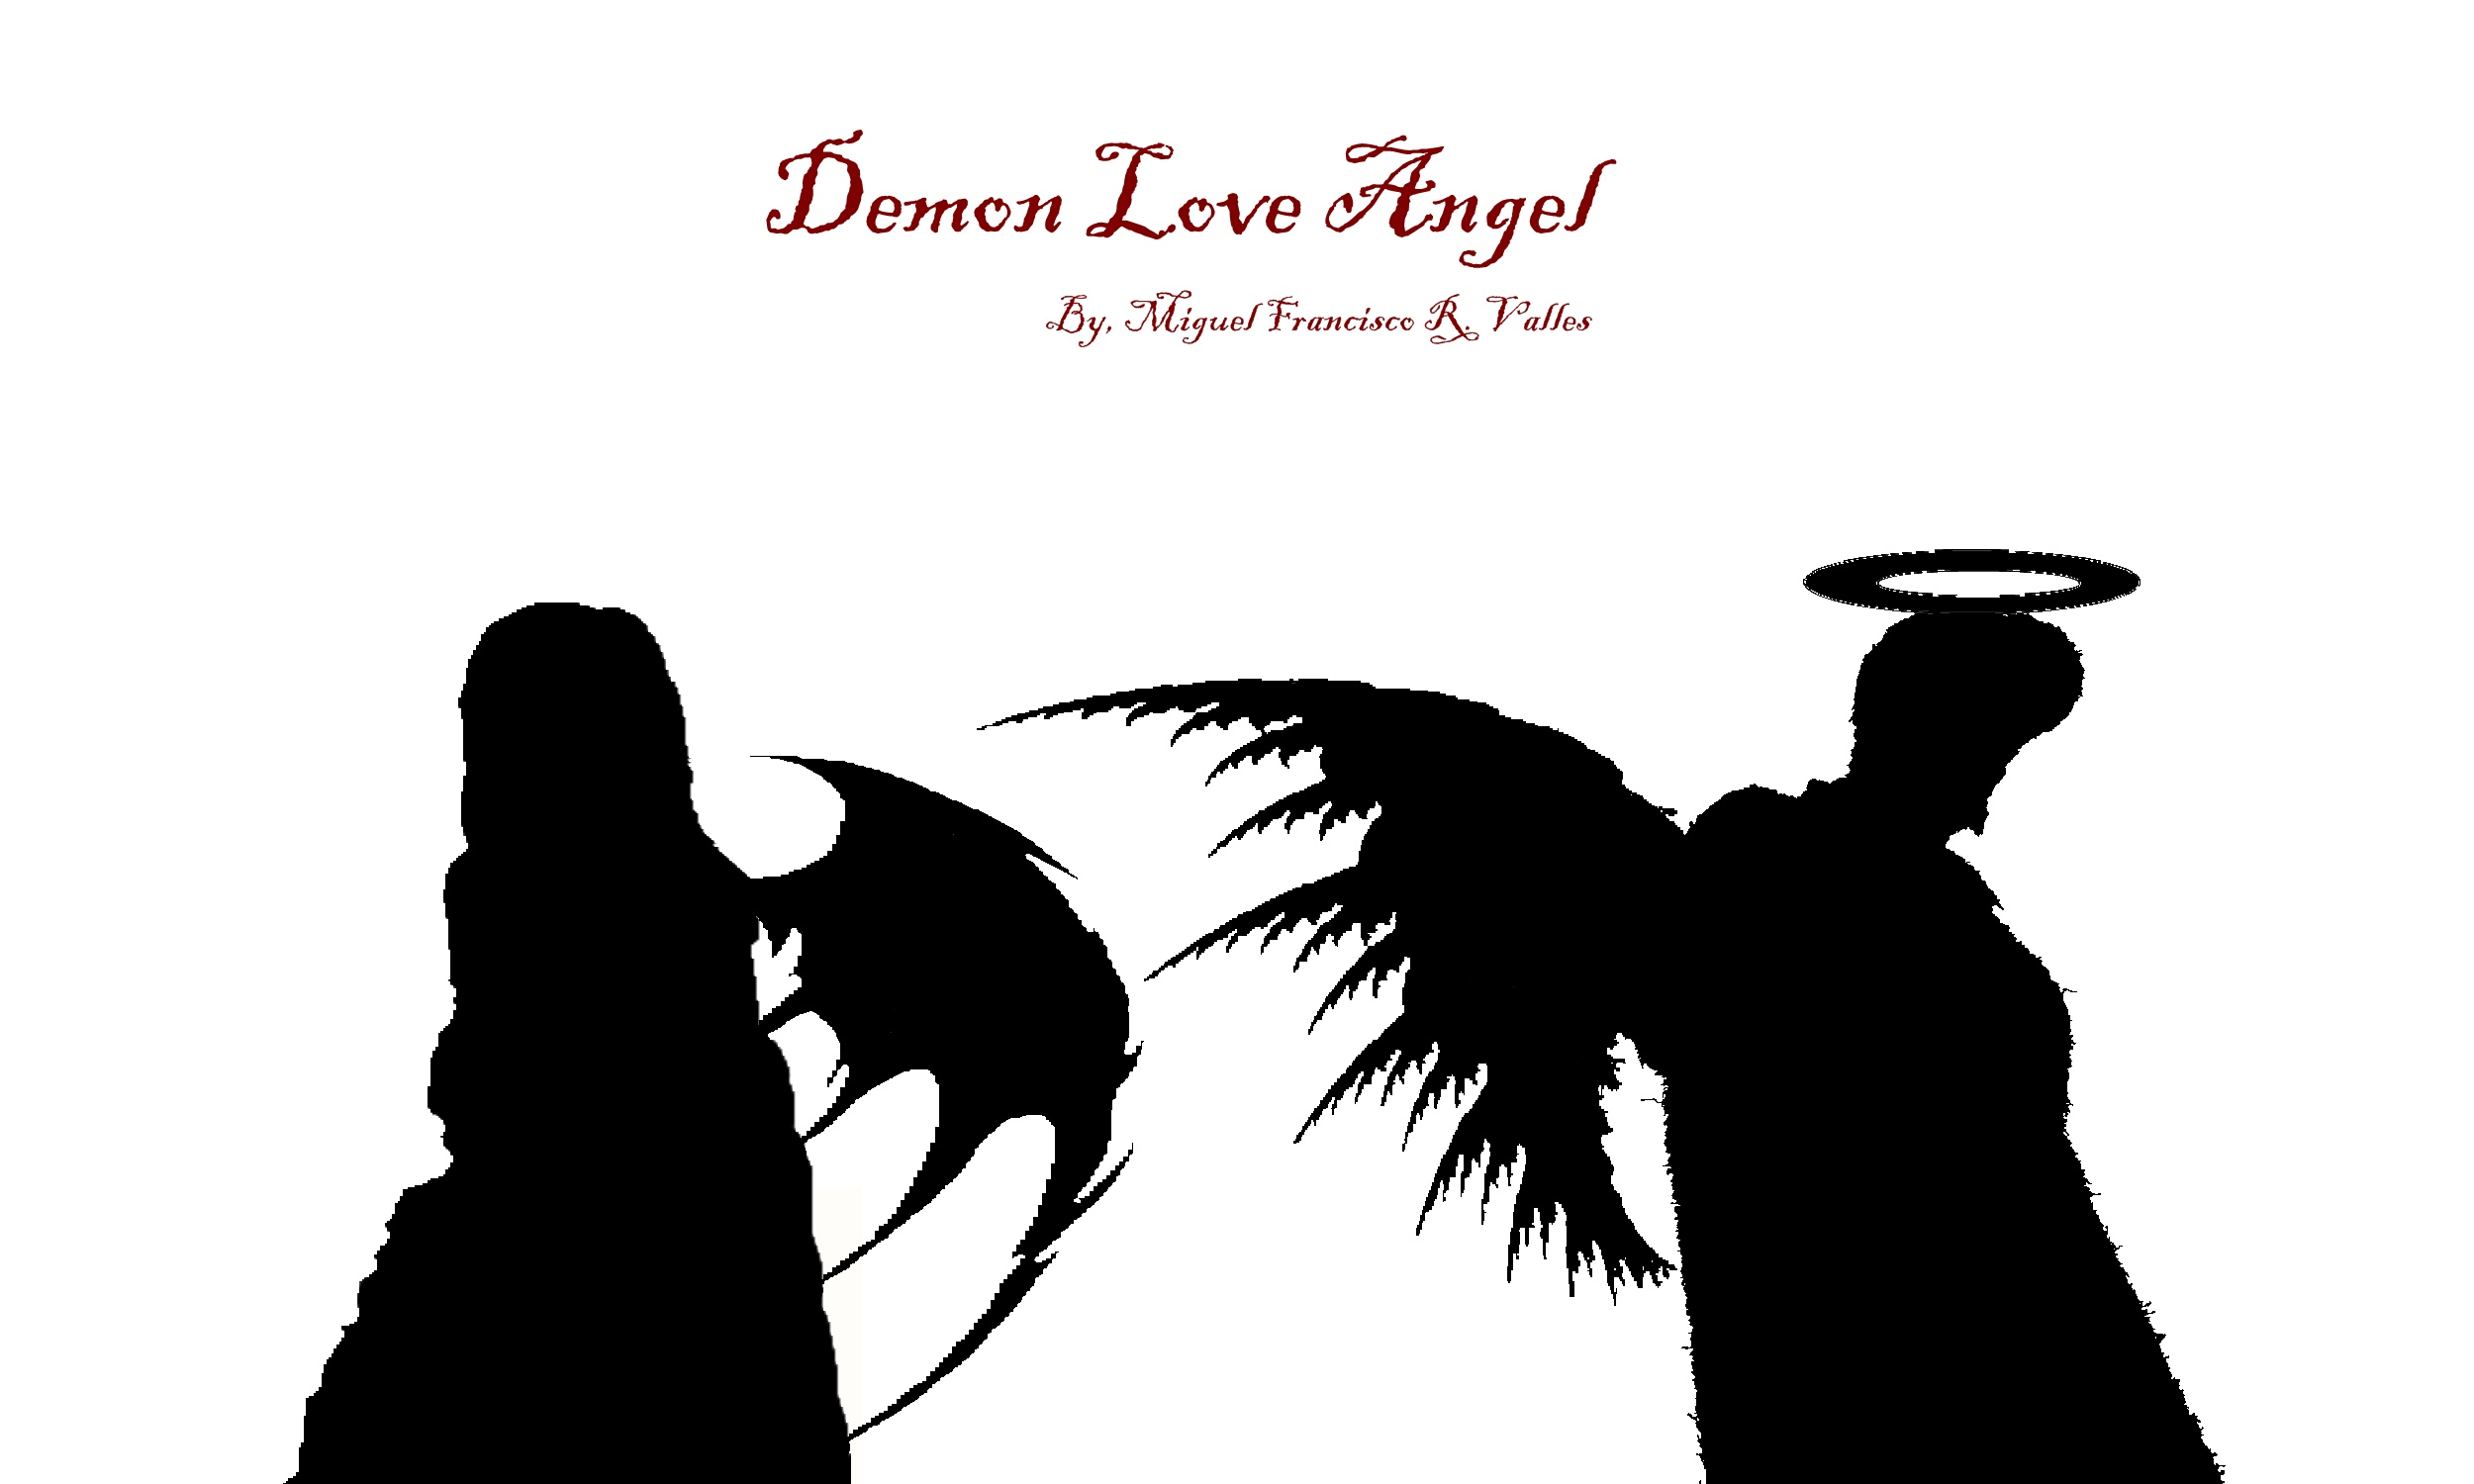 devil love angel